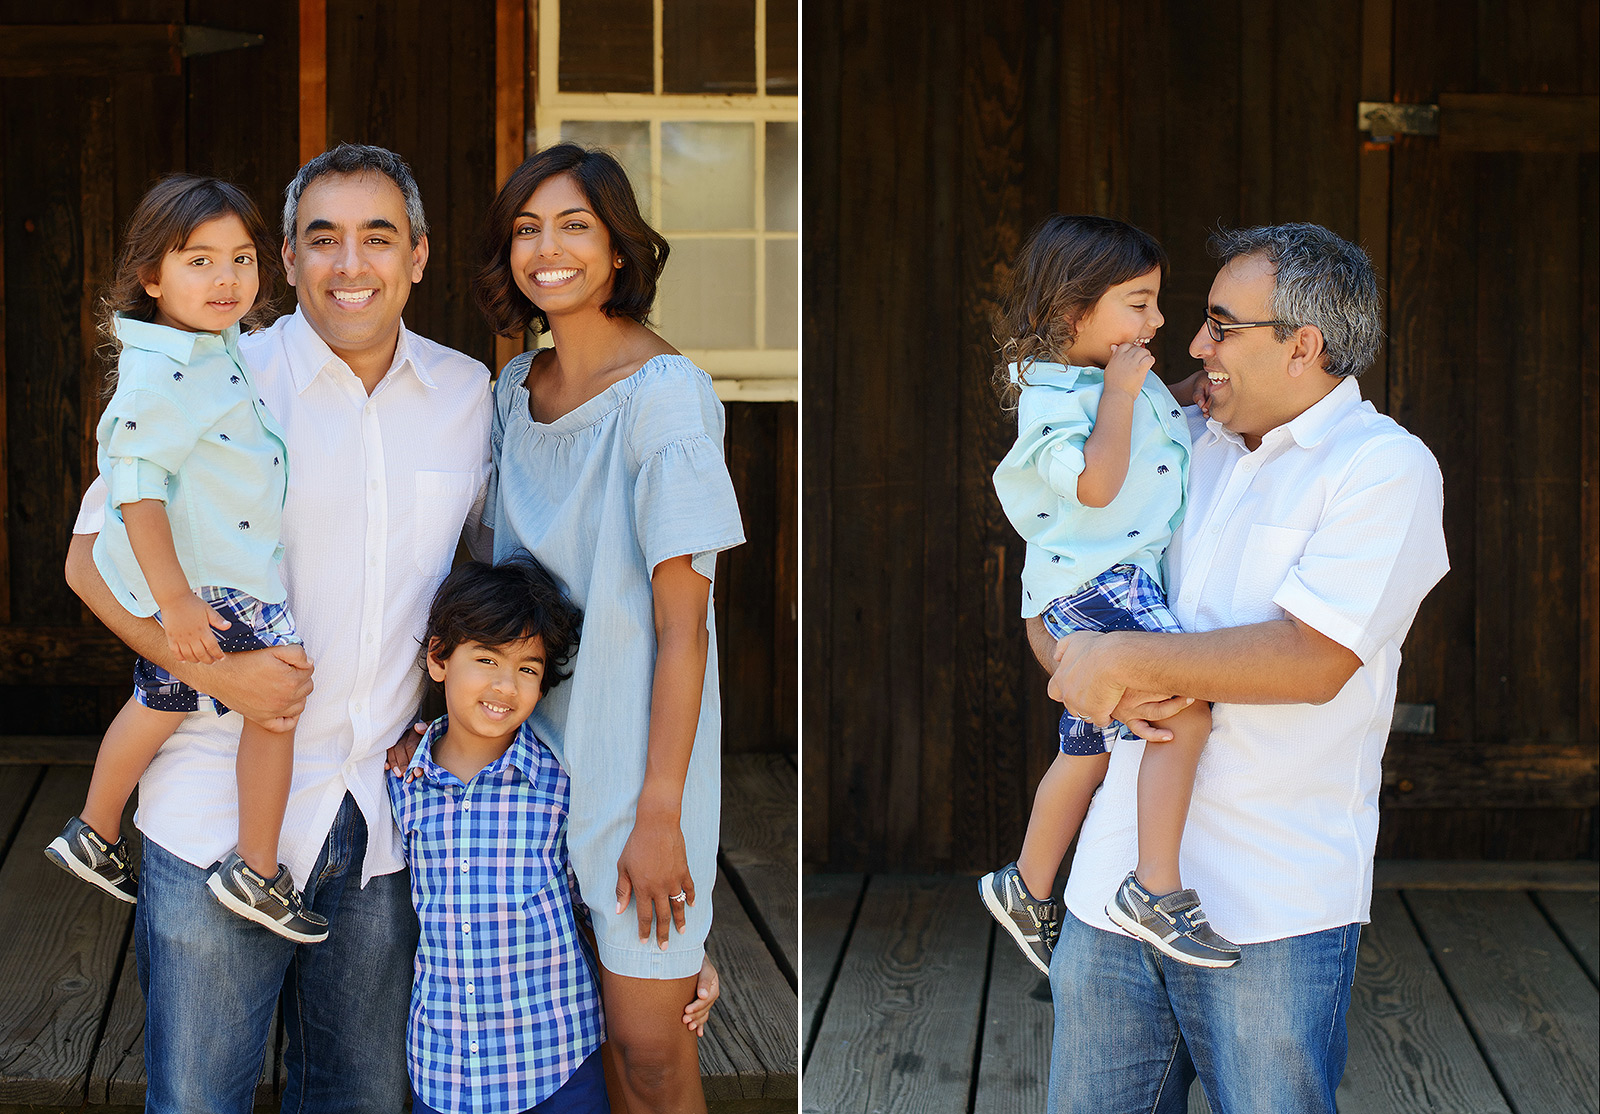 Family portrait with wooden window background at Folsom Powerhouse